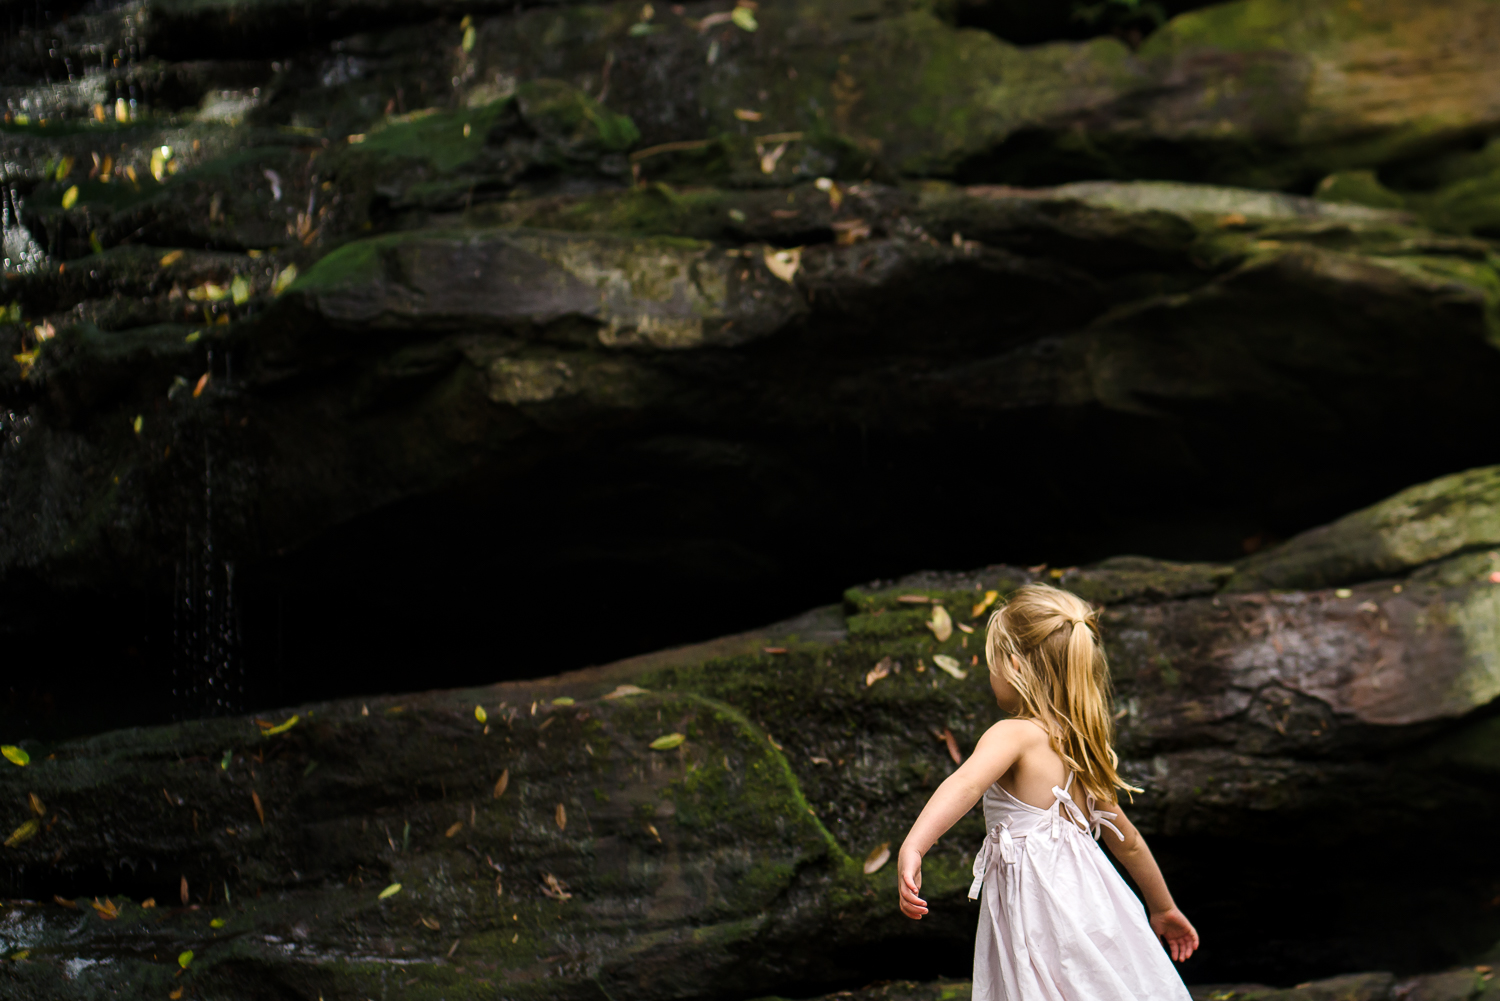 cindycavanagh-sydney-lifestyle-motherhood-photographer (10 of 41).JPG